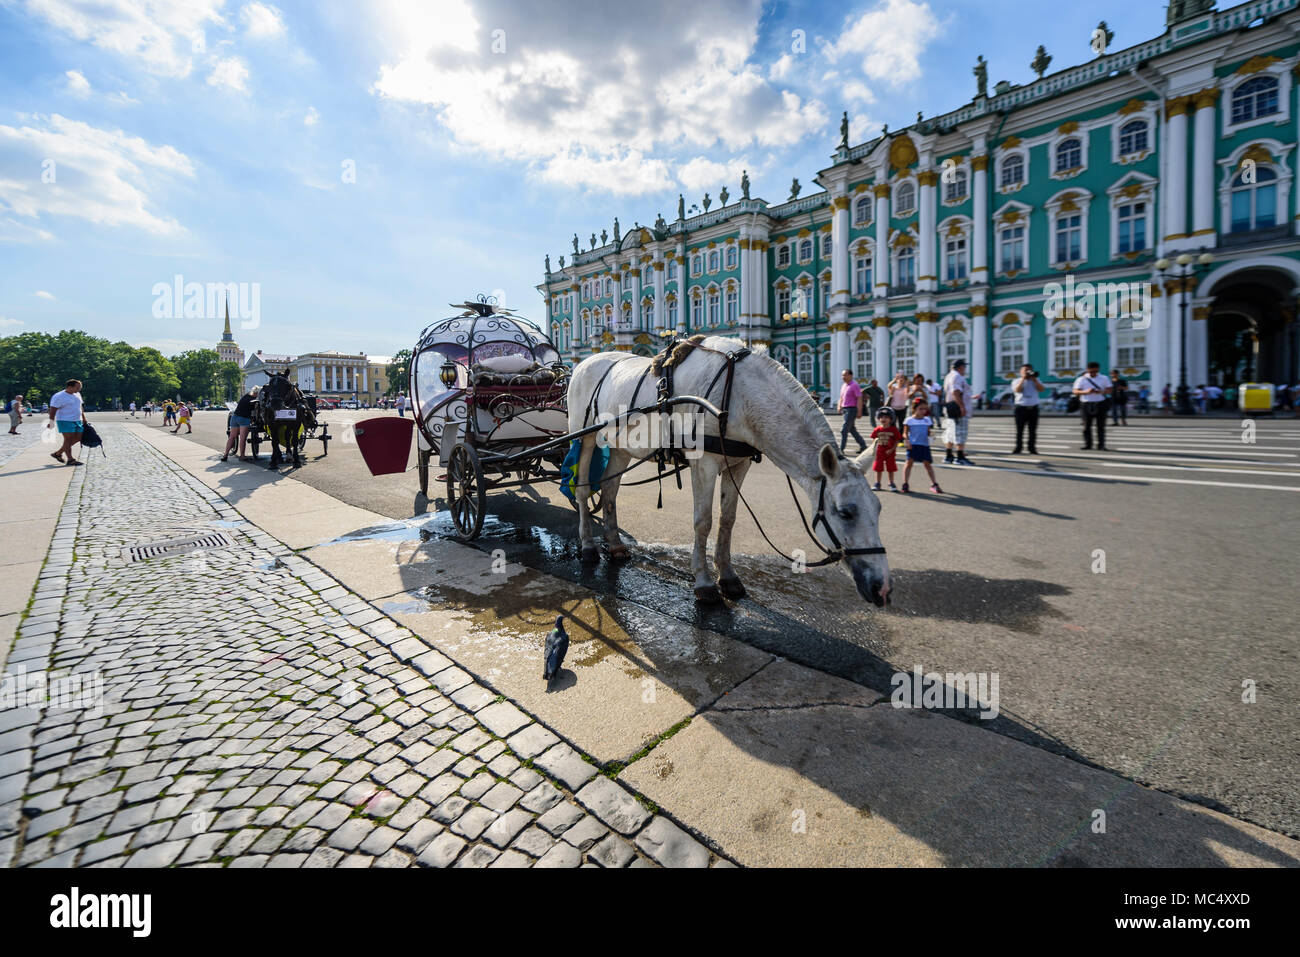 The Hermitage on Palace Square St Petersburg Russia horse and carriage - Stock Image